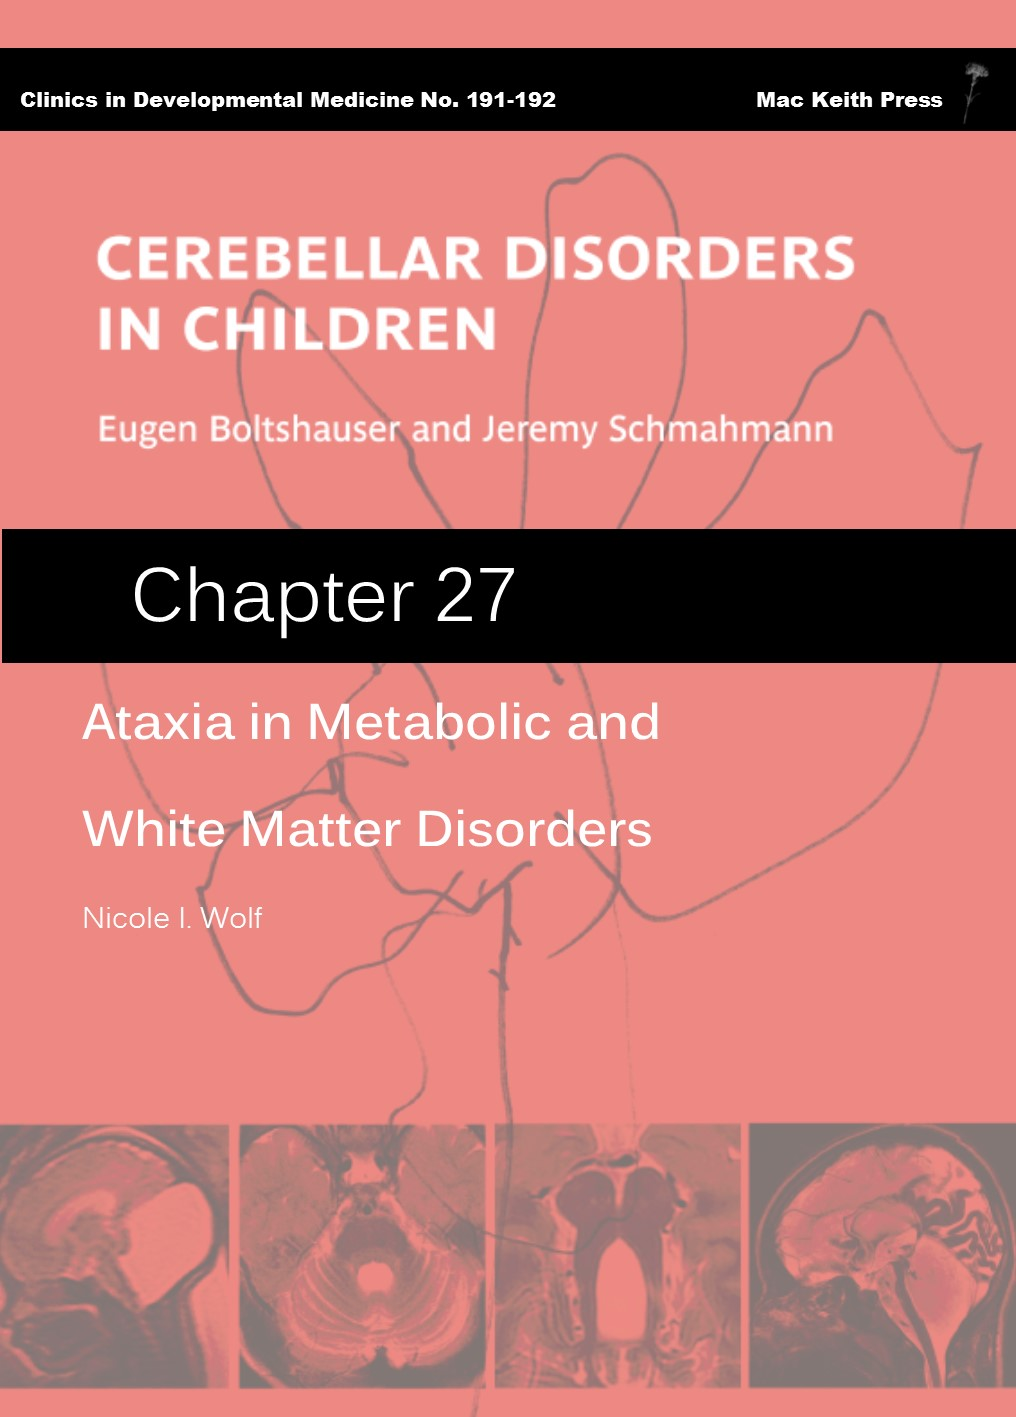 Ataxia in Metabolic and White Matter Disorders - Cerebellar Disorders in Children (Chapter 27) COVER